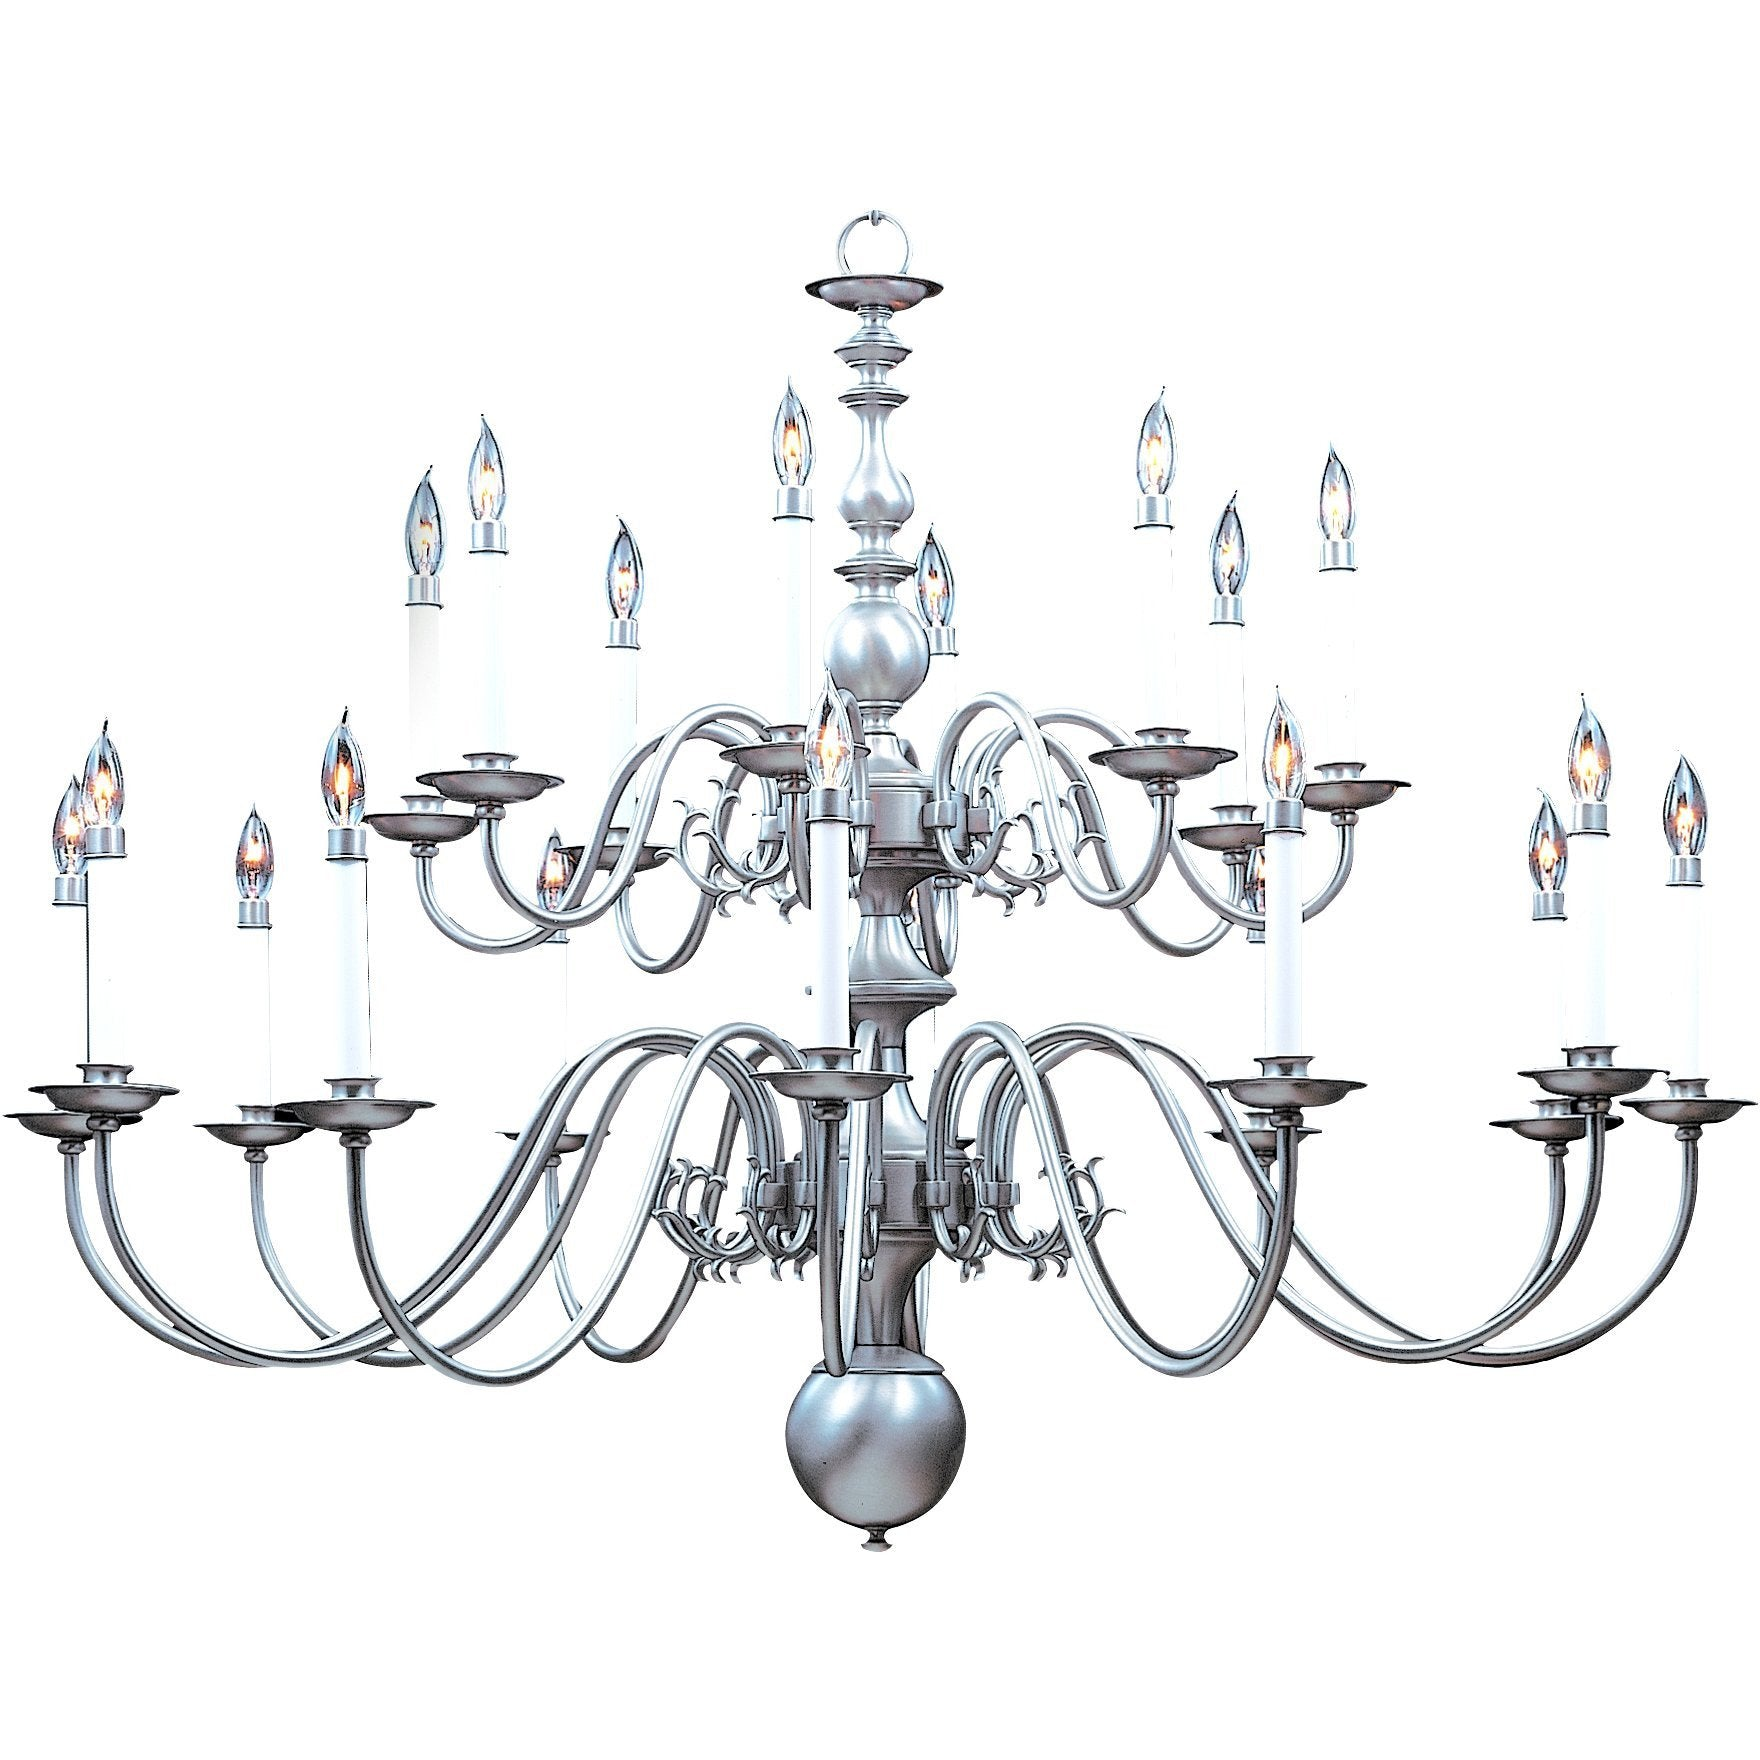 Framburg Foyer Chandeliers Satin Pewter 20-Light Satin Pewter Jamestown Foyer Chandelier by Framburg 9138